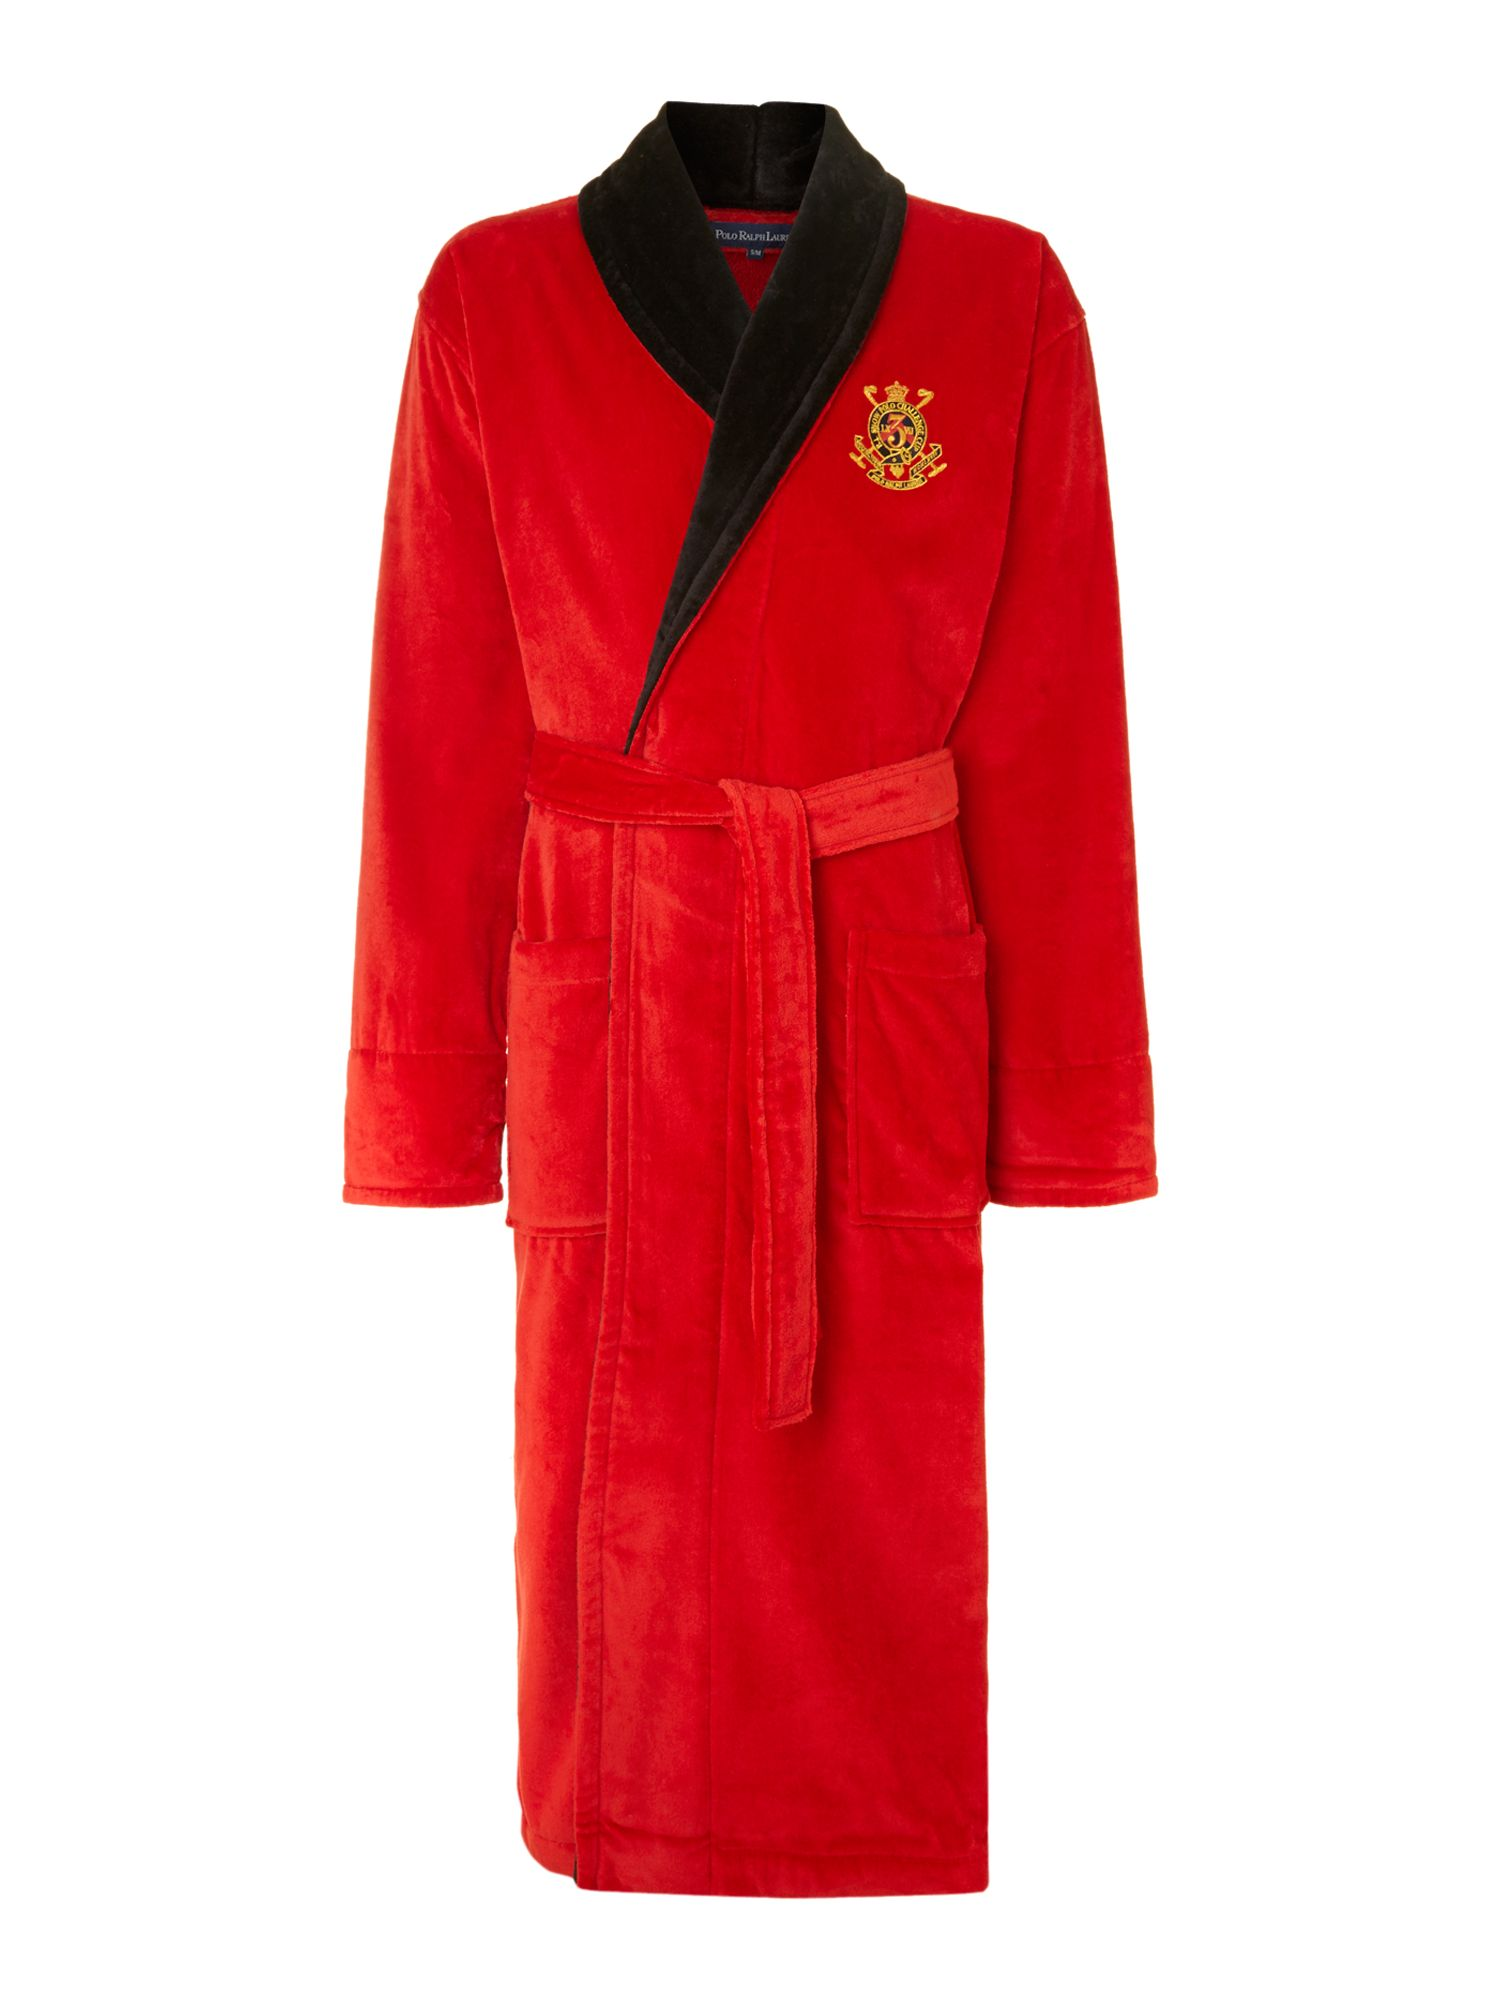 polo ralph lauren polo logo robe in red for men lyst. Black Bedroom Furniture Sets. Home Design Ideas